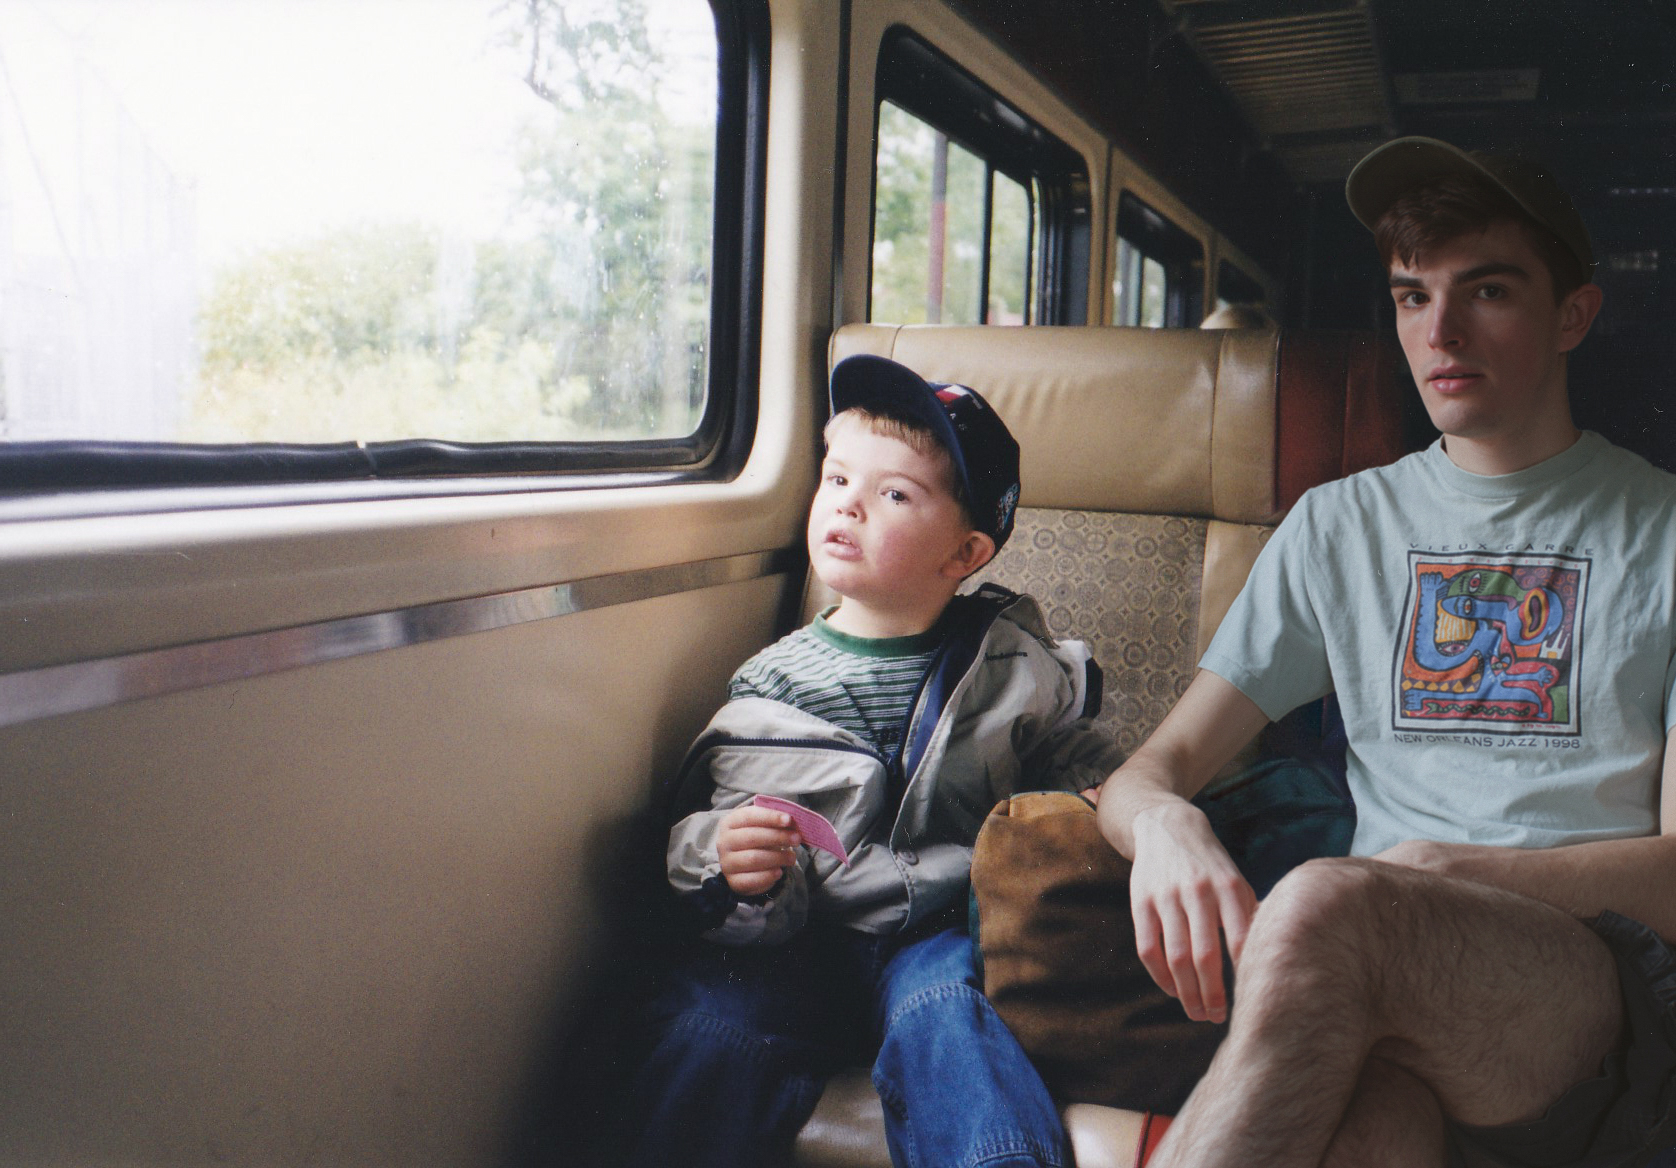 Conor with his younger self on a train